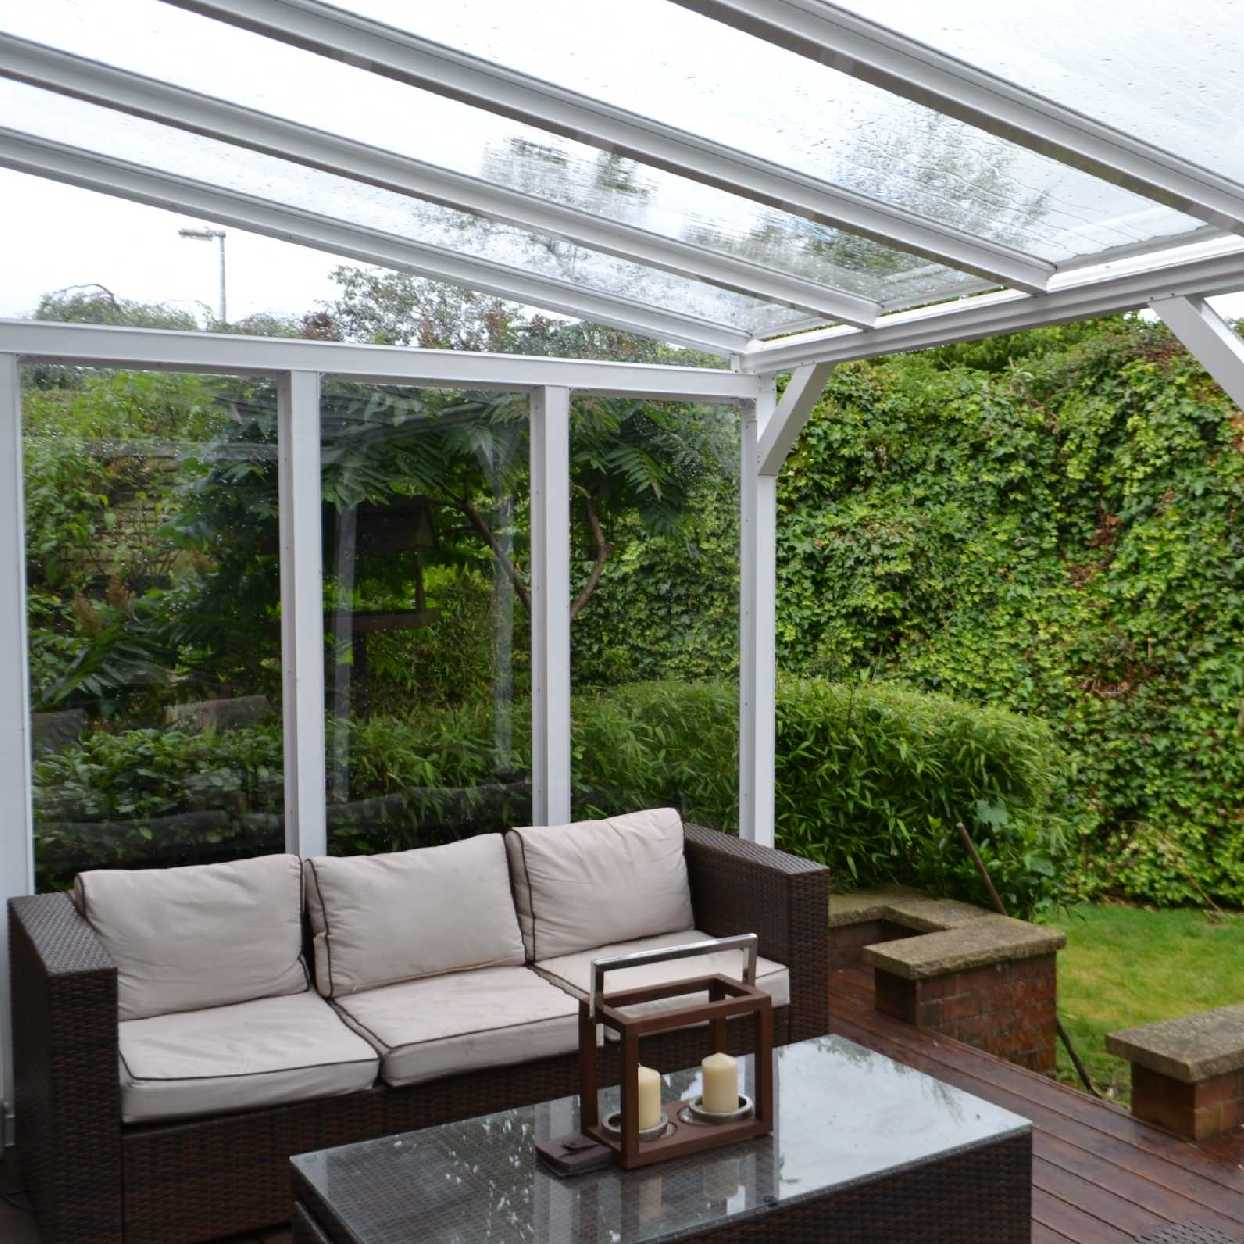 Omega Smart Lean-To Canopy with 6mm Glass Clear Plate Polycarbonate Glazing - 4.9m (W) x 2.5m (P), (3) Supporting Posts